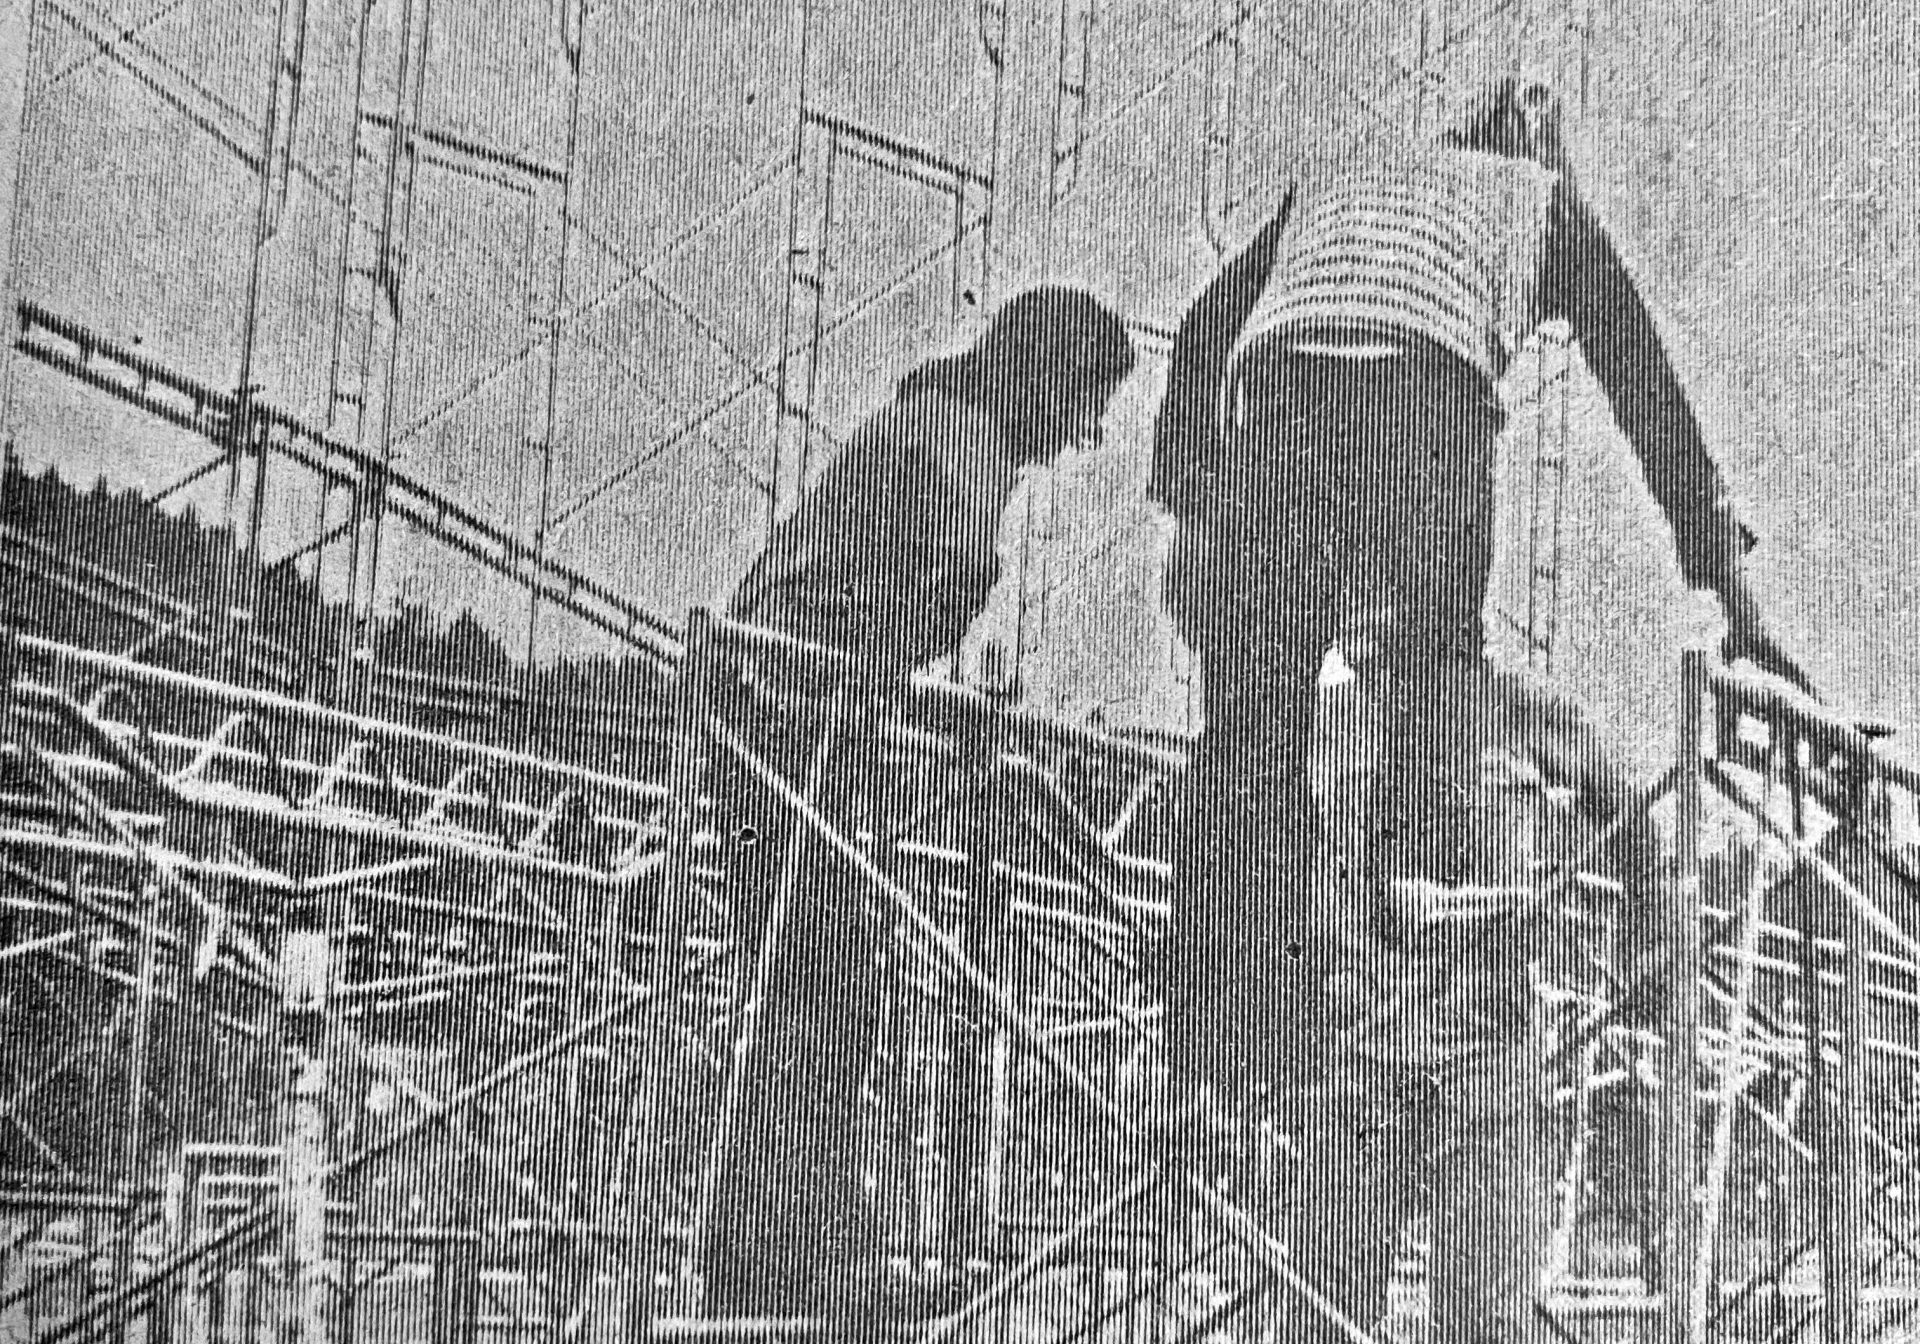 Young people setting up the stage for the 1970 Buffalo Convention and Pig Roast (or rock festival)